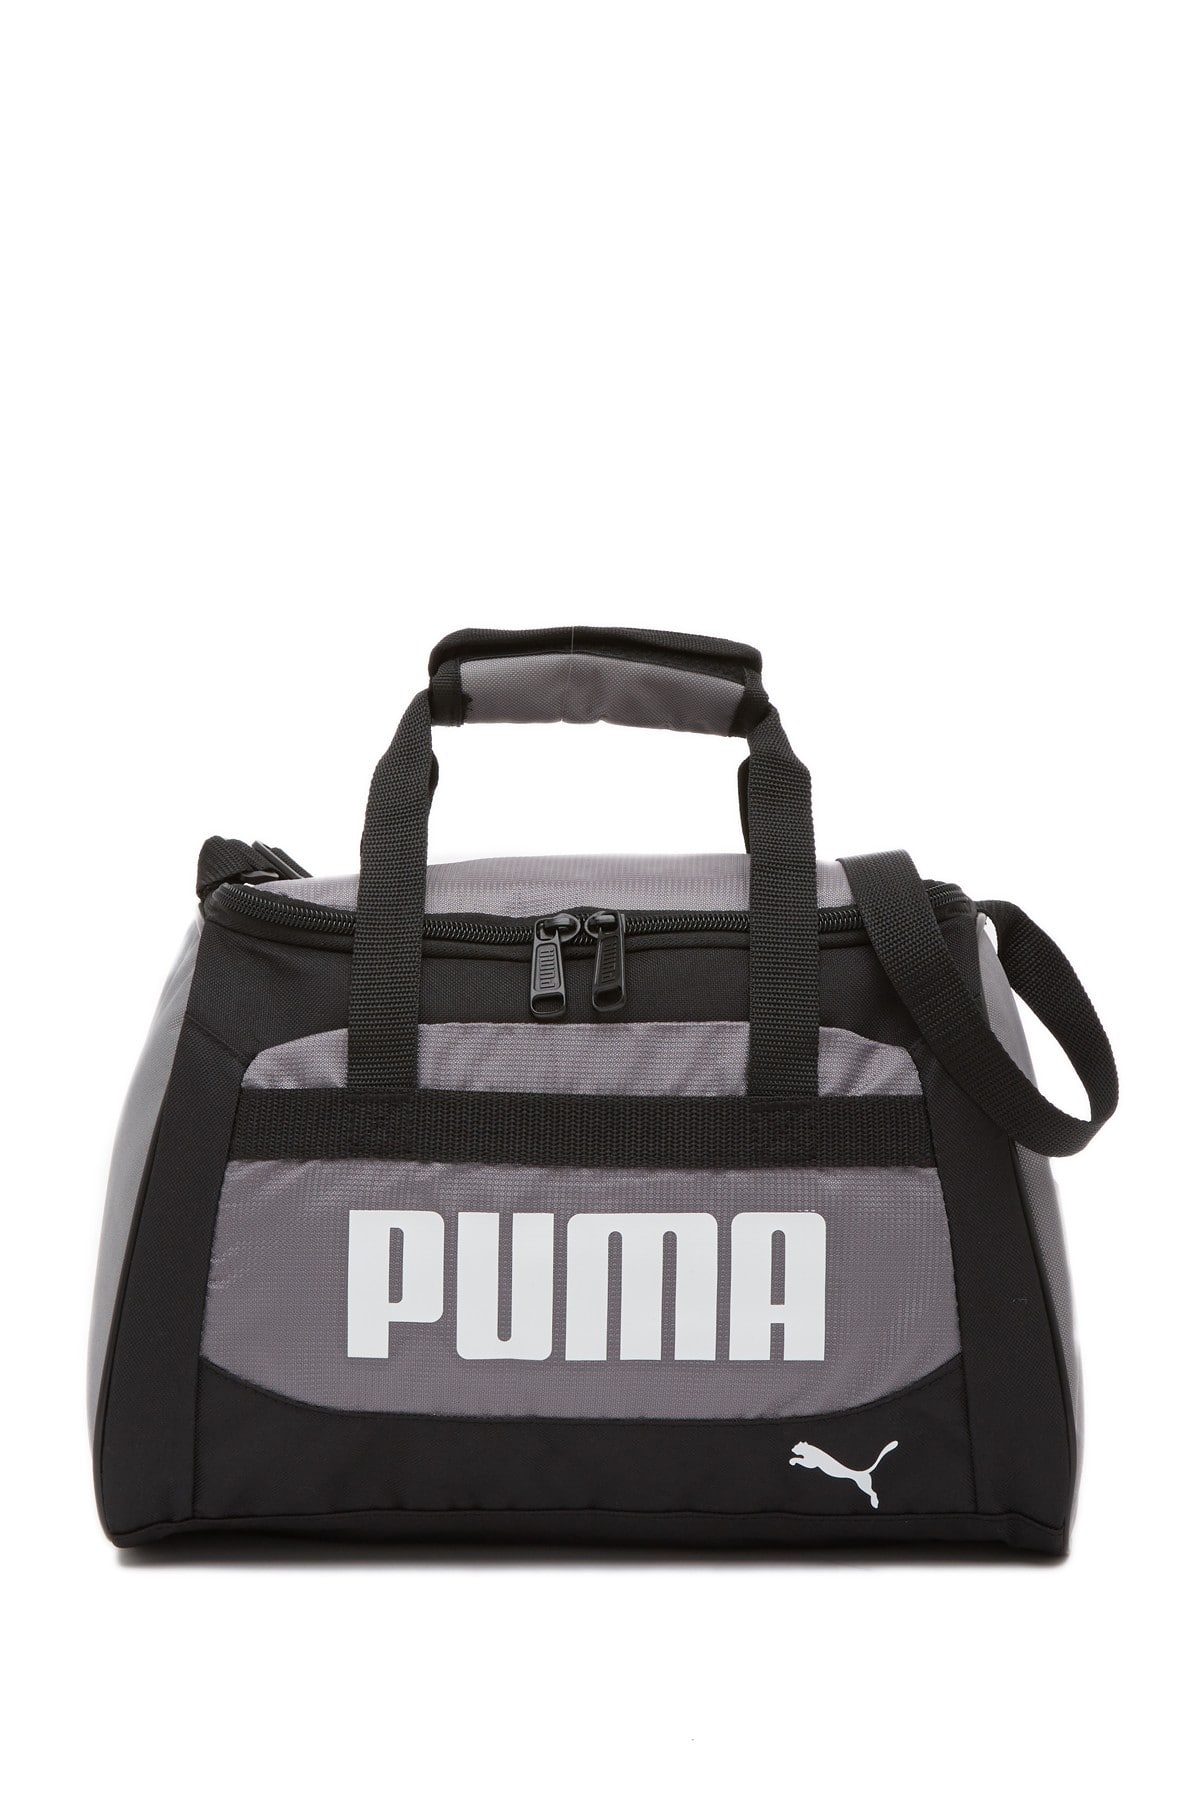 Puma Travel Cooler  10.95 + Free S H on  100+   Adidas and Nike Gym Bags on  sale too 0aa98fc0a935f